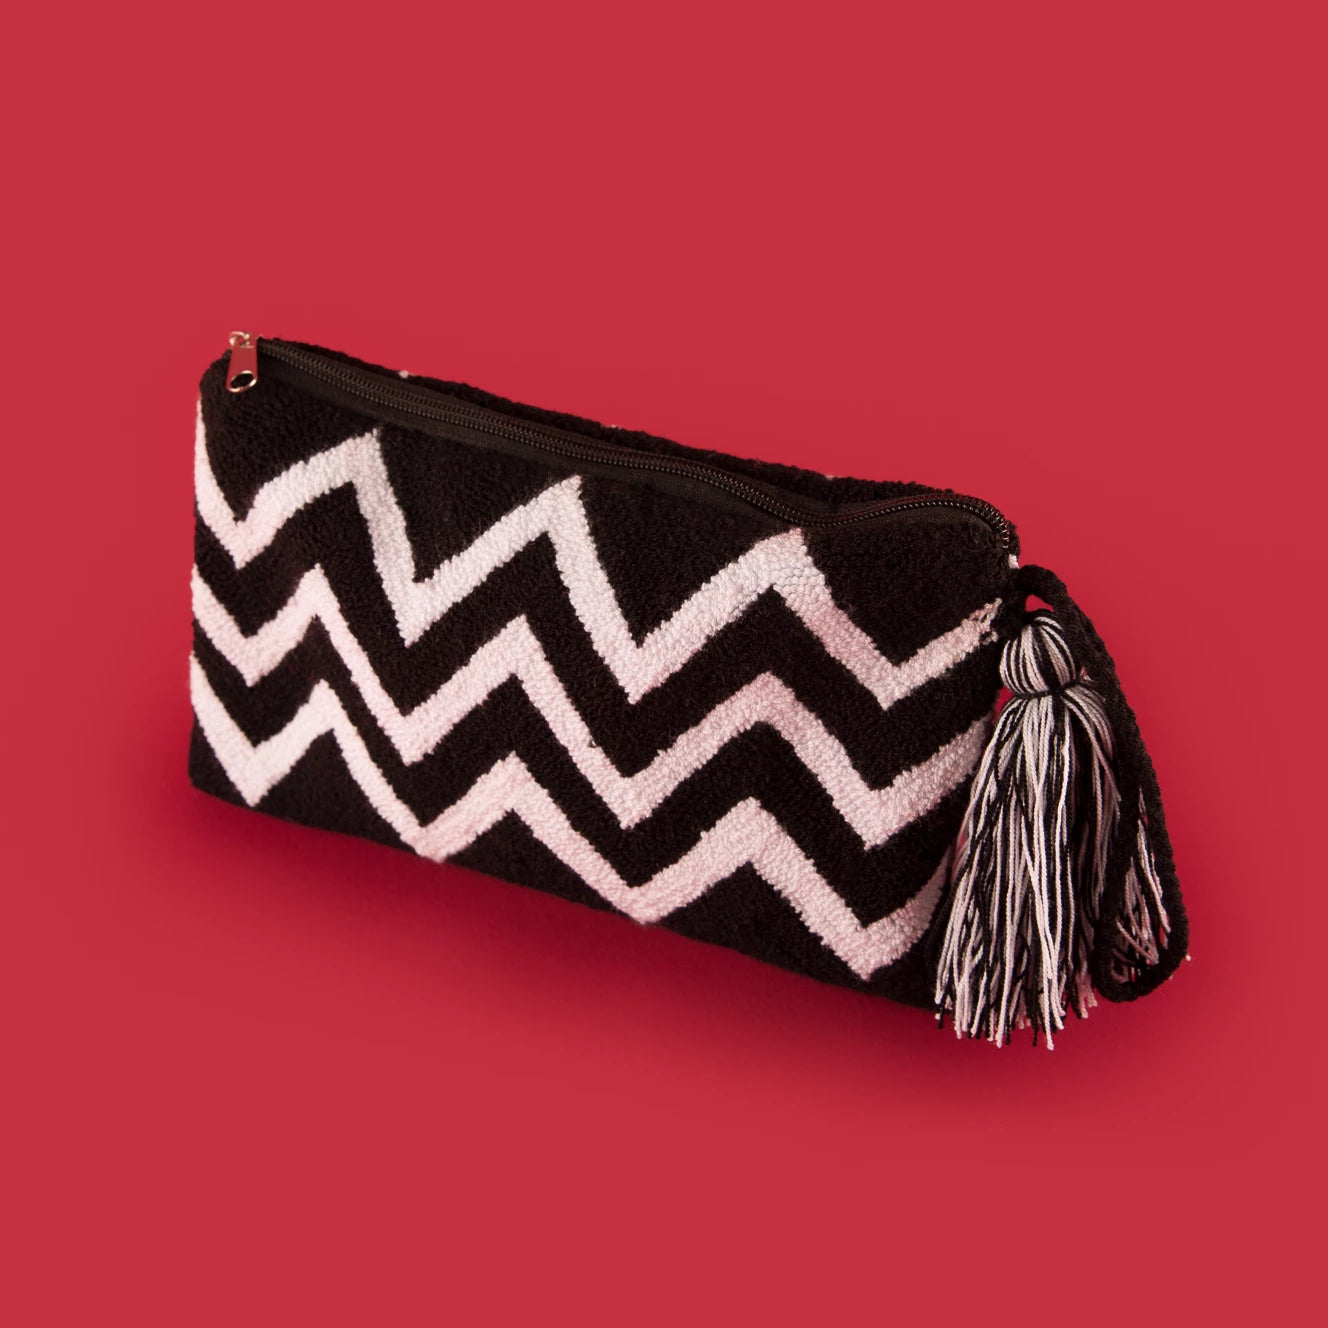 Large Black & White Clutch